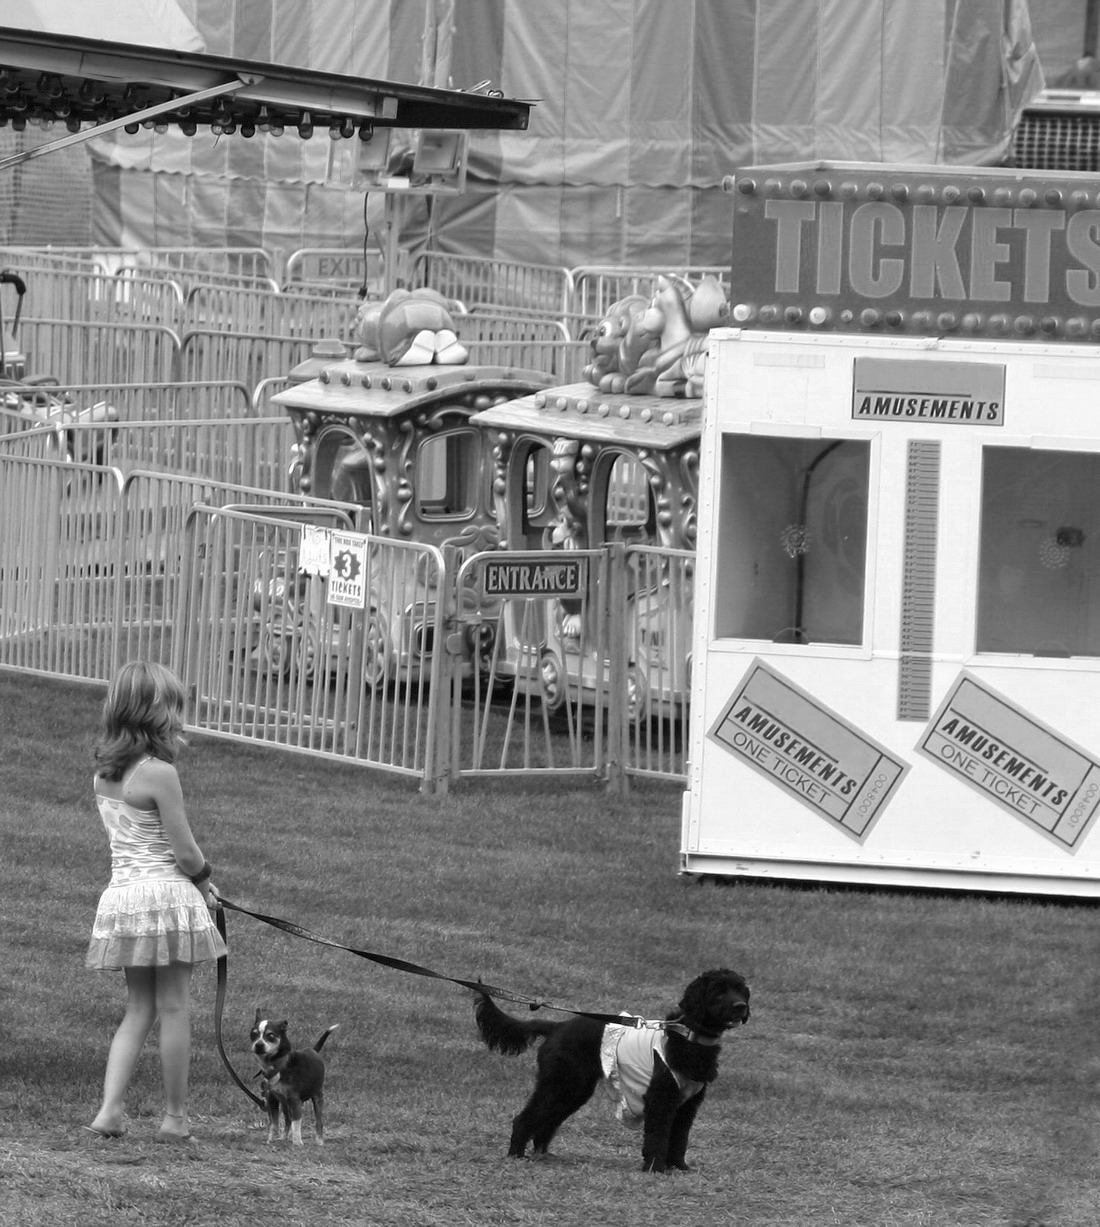 circus dogs for hire author osterman john